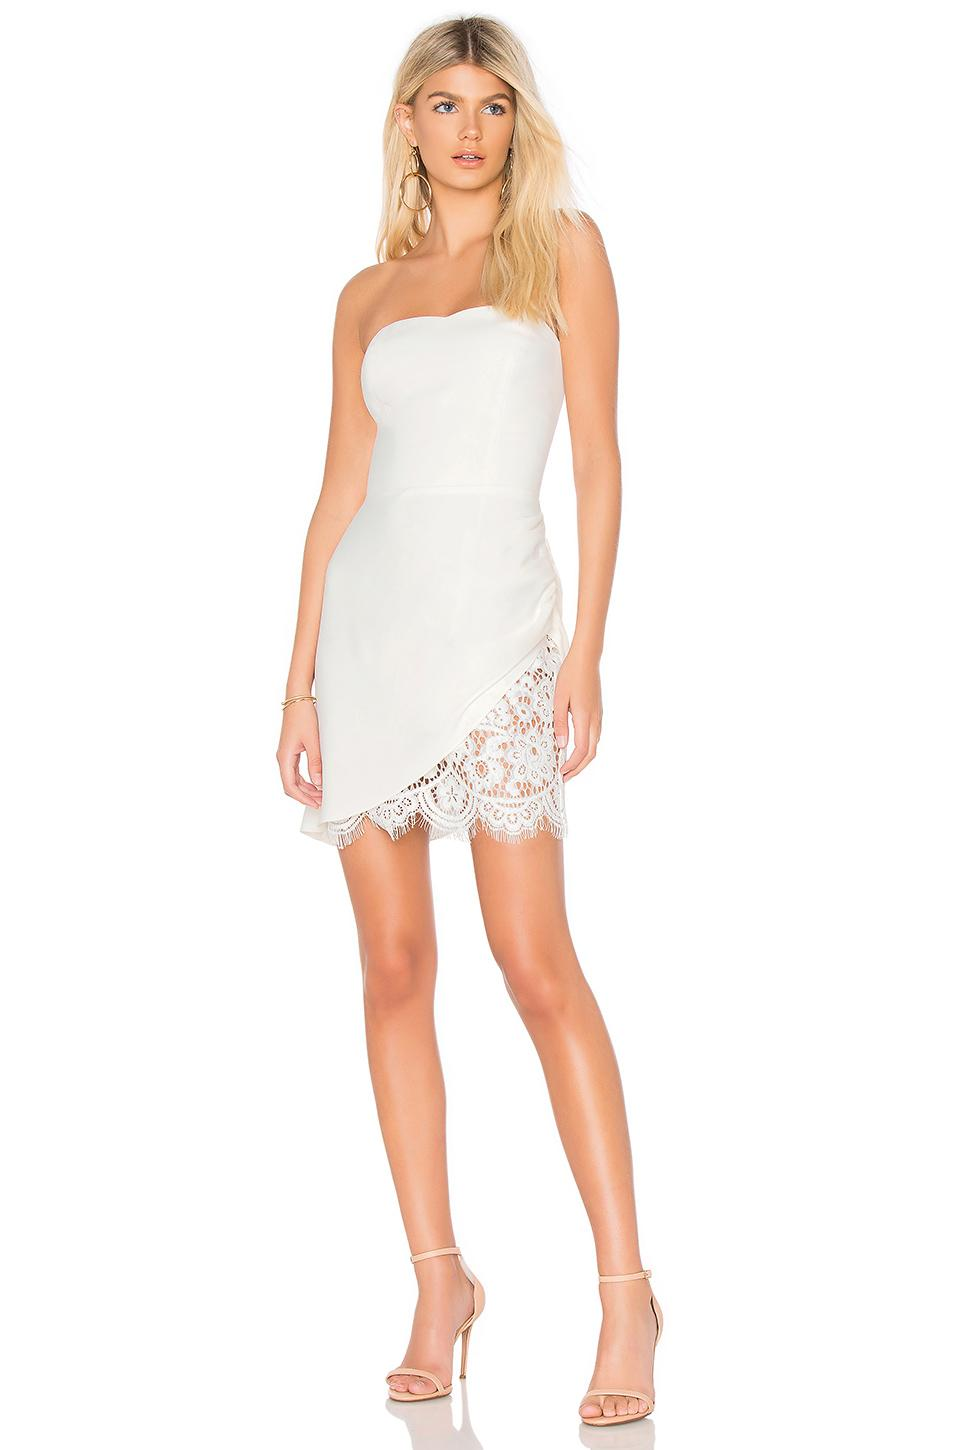 9771f7dd Gallery. Previously sold at: REVOLVE · Women's White Dresses